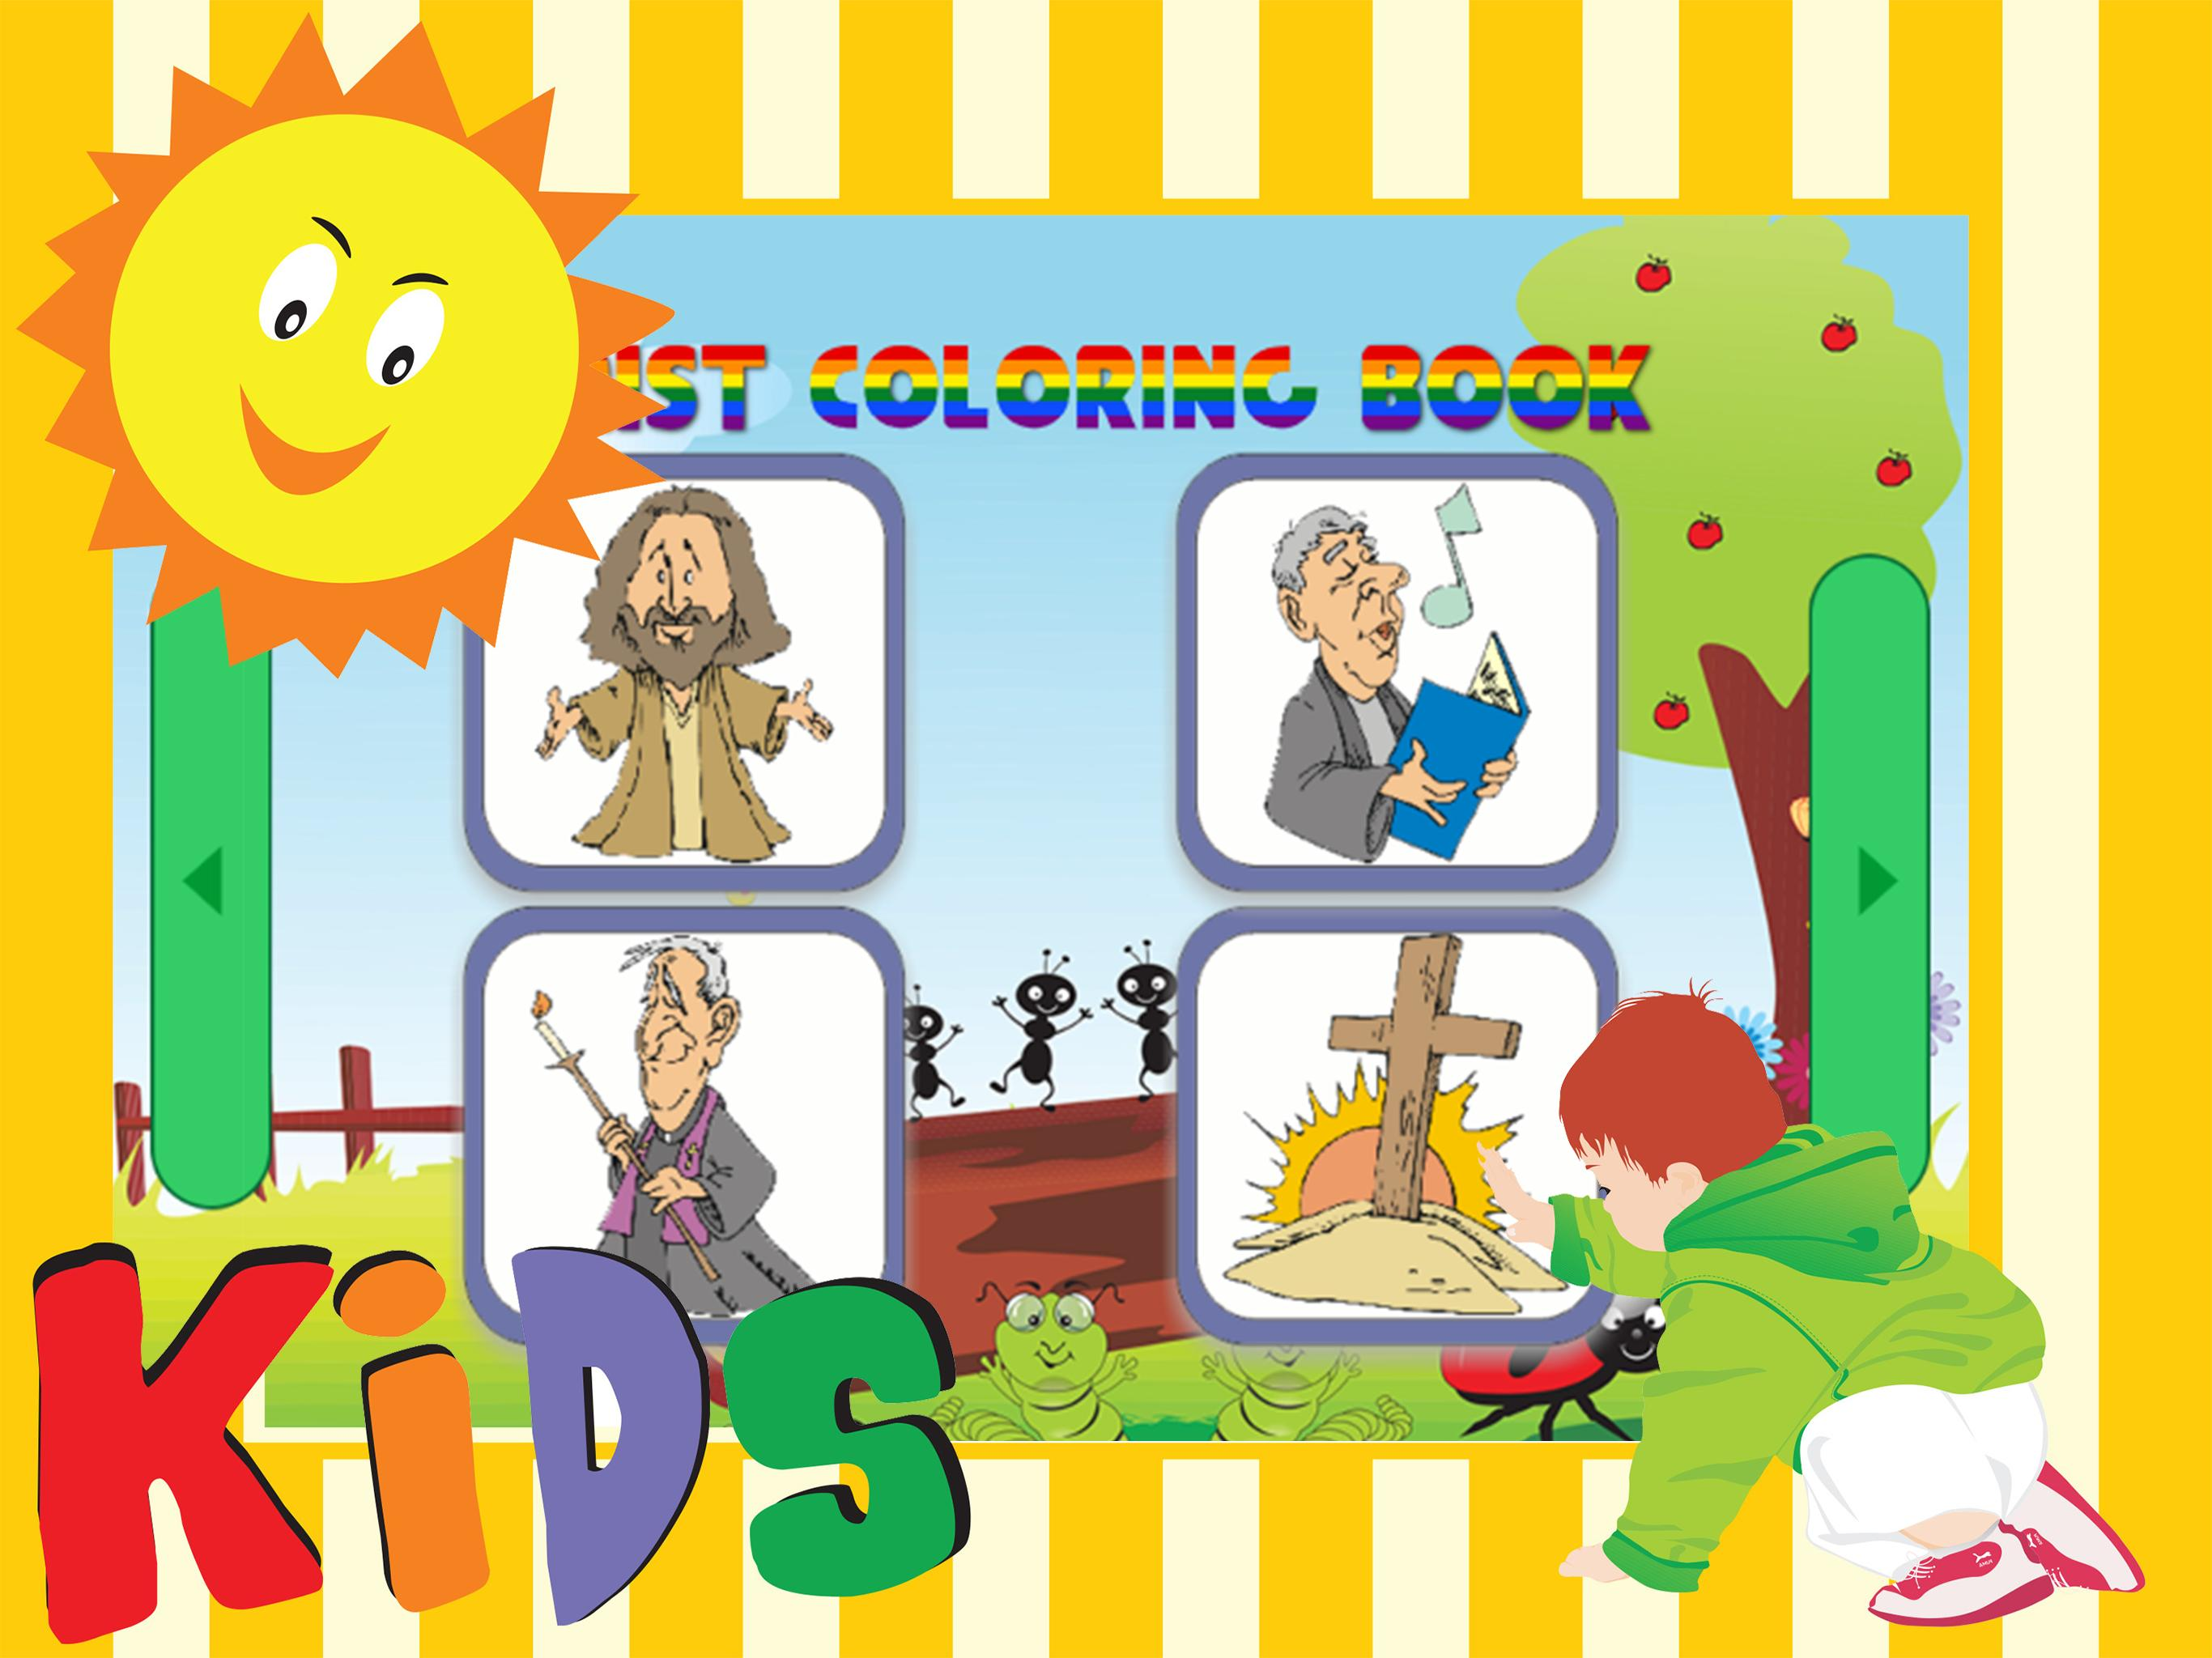 LDS Christ Coloring Book Free for Android - APK Download